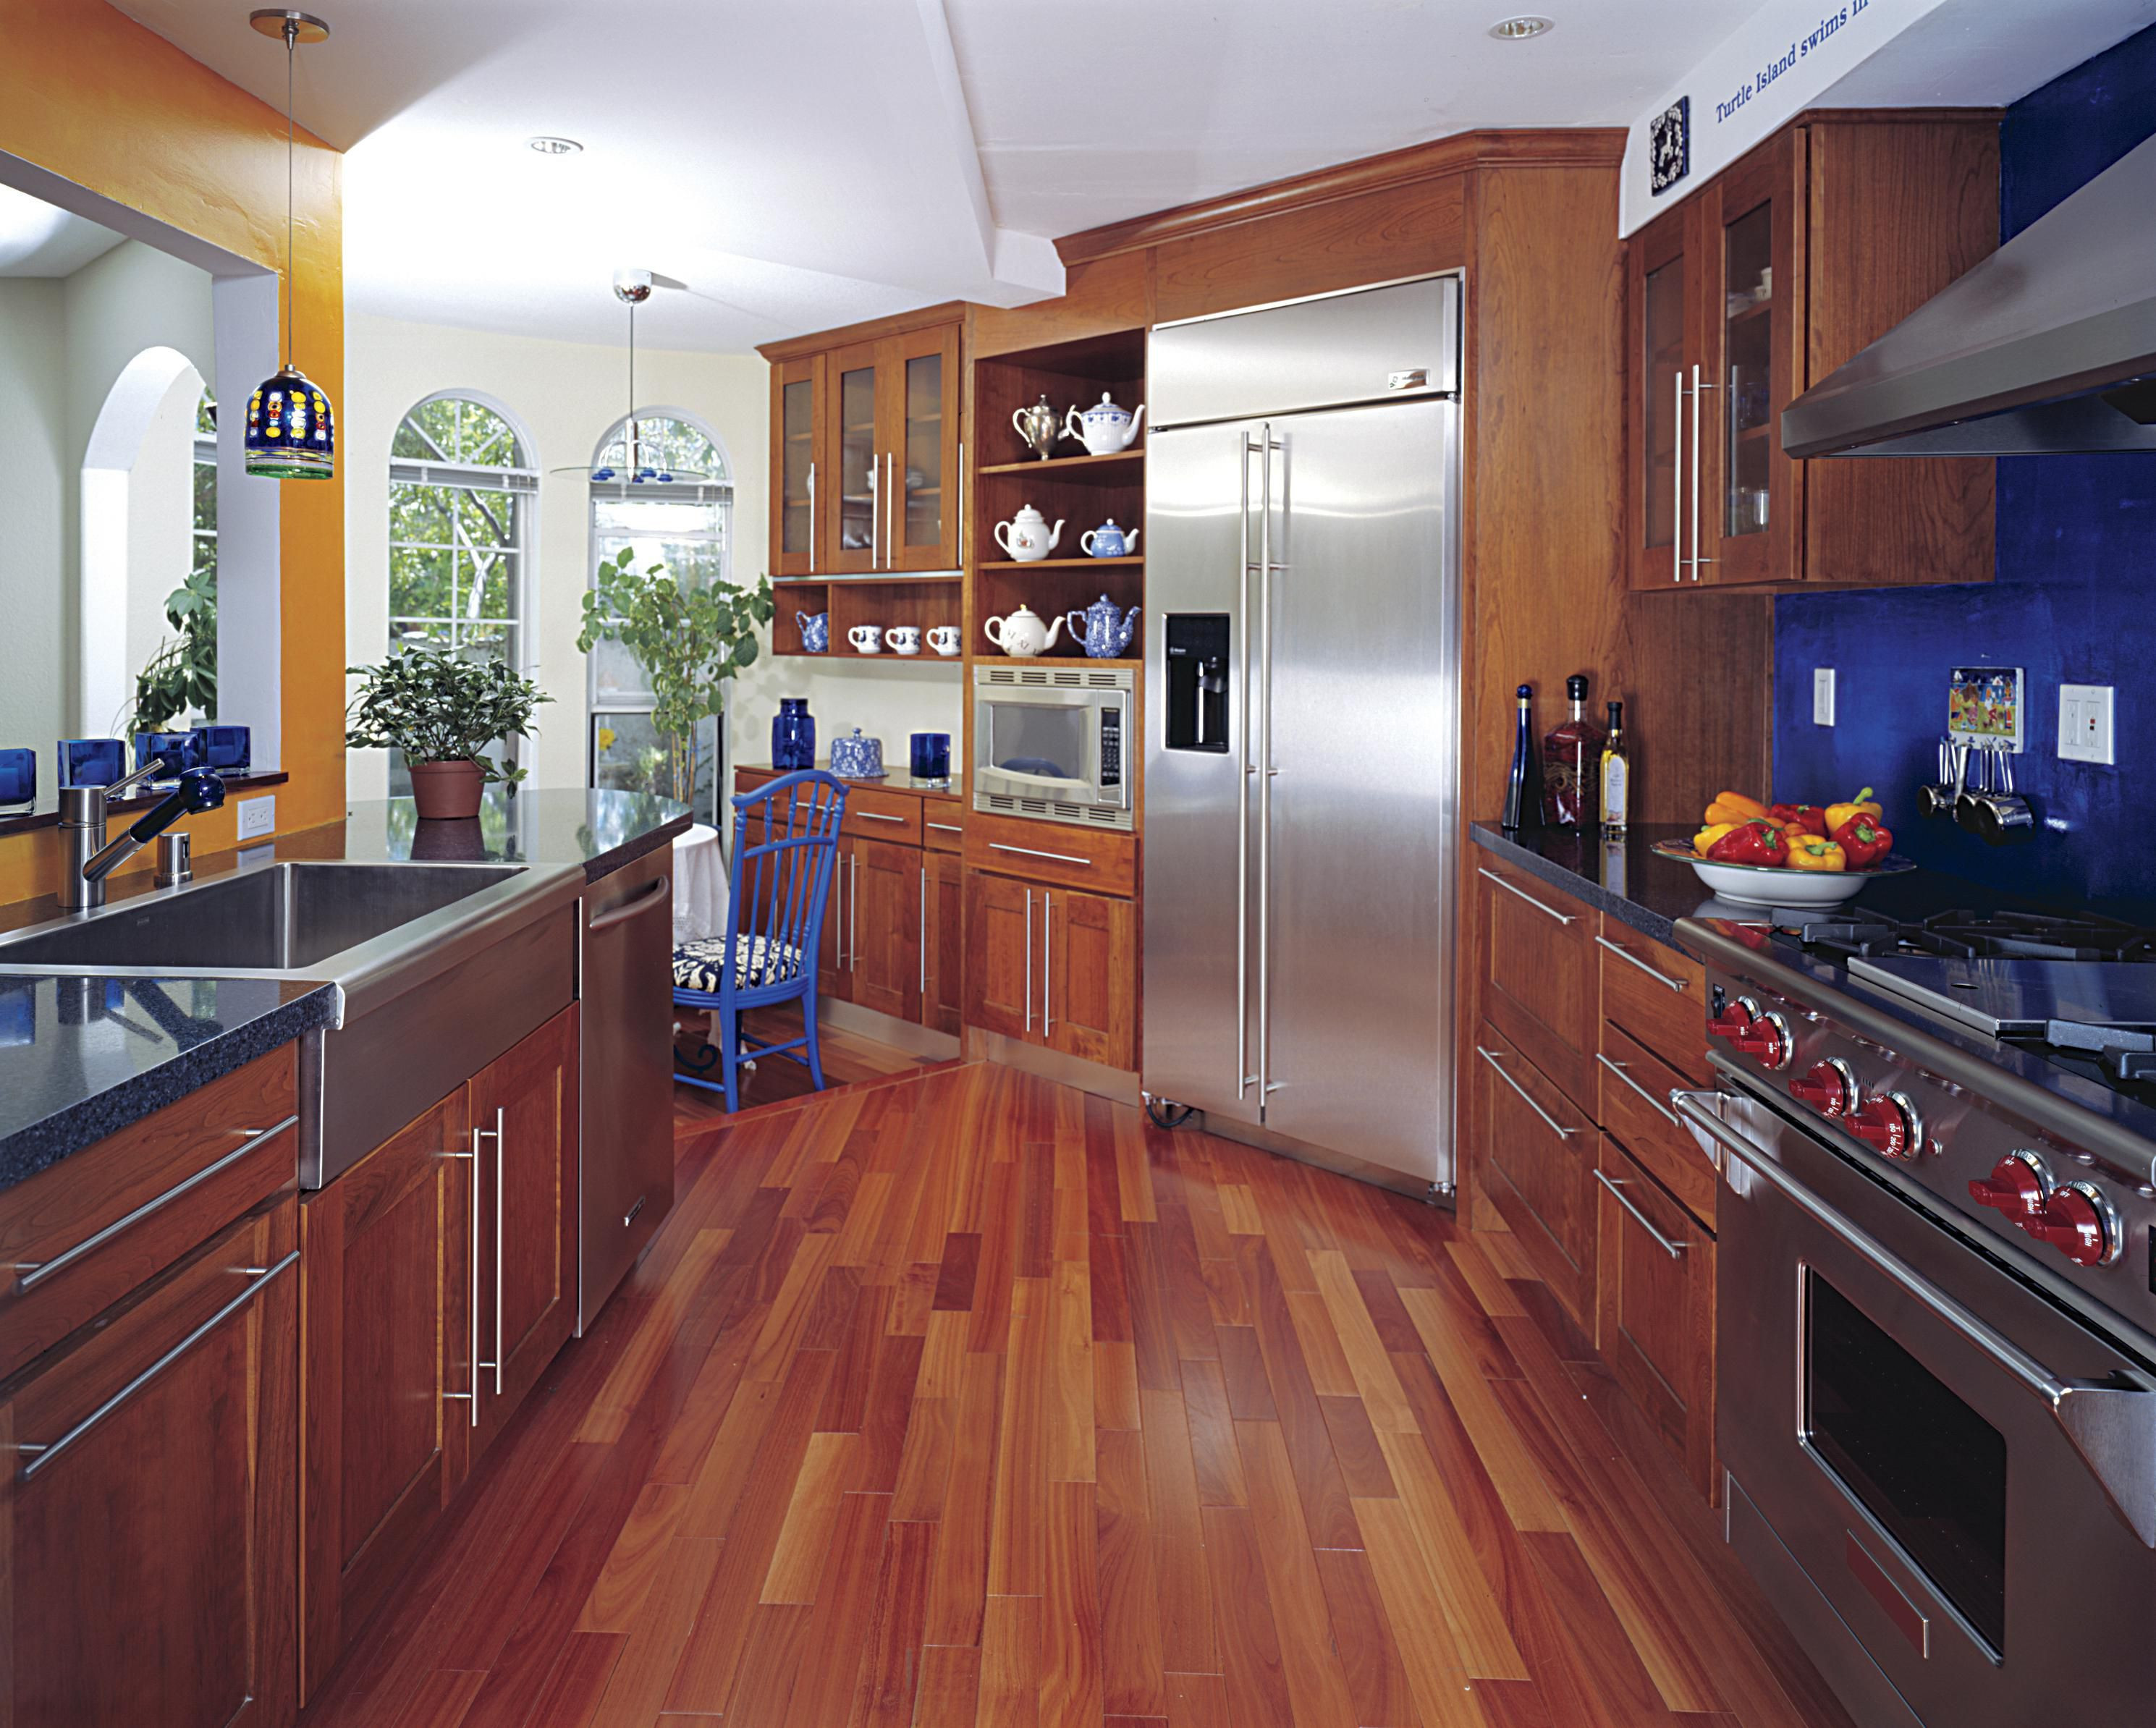 average price to install engineered hardwood floor of hardwood floor in a kitchen is this allowed inside 186828472 56a49f3a5f9b58b7d0d7e142